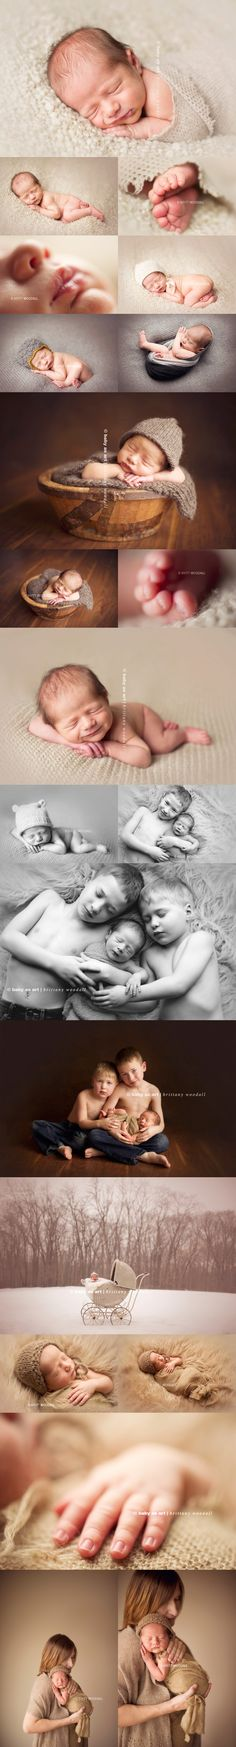 a few ideas for sibling/newborn photos to play with.... San Diego destination newborn photographer Brittany Woodall